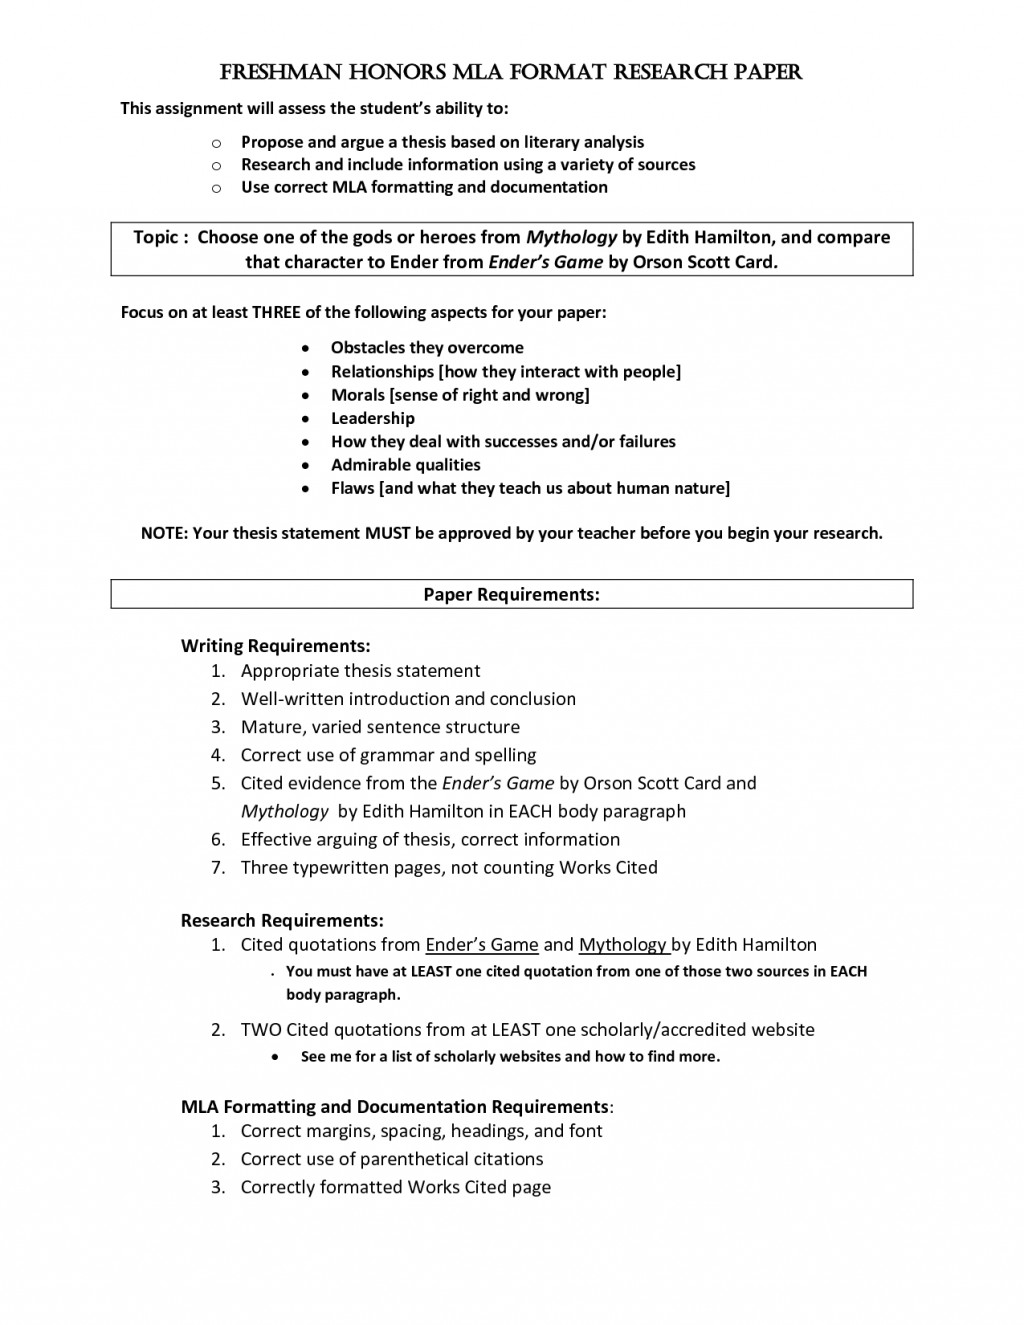 017 Mla Research Paper Citation Format Bunch Ideas Of Essay Example Beautiful Politicalnce Guidelines Imposing In Text Citing A Large